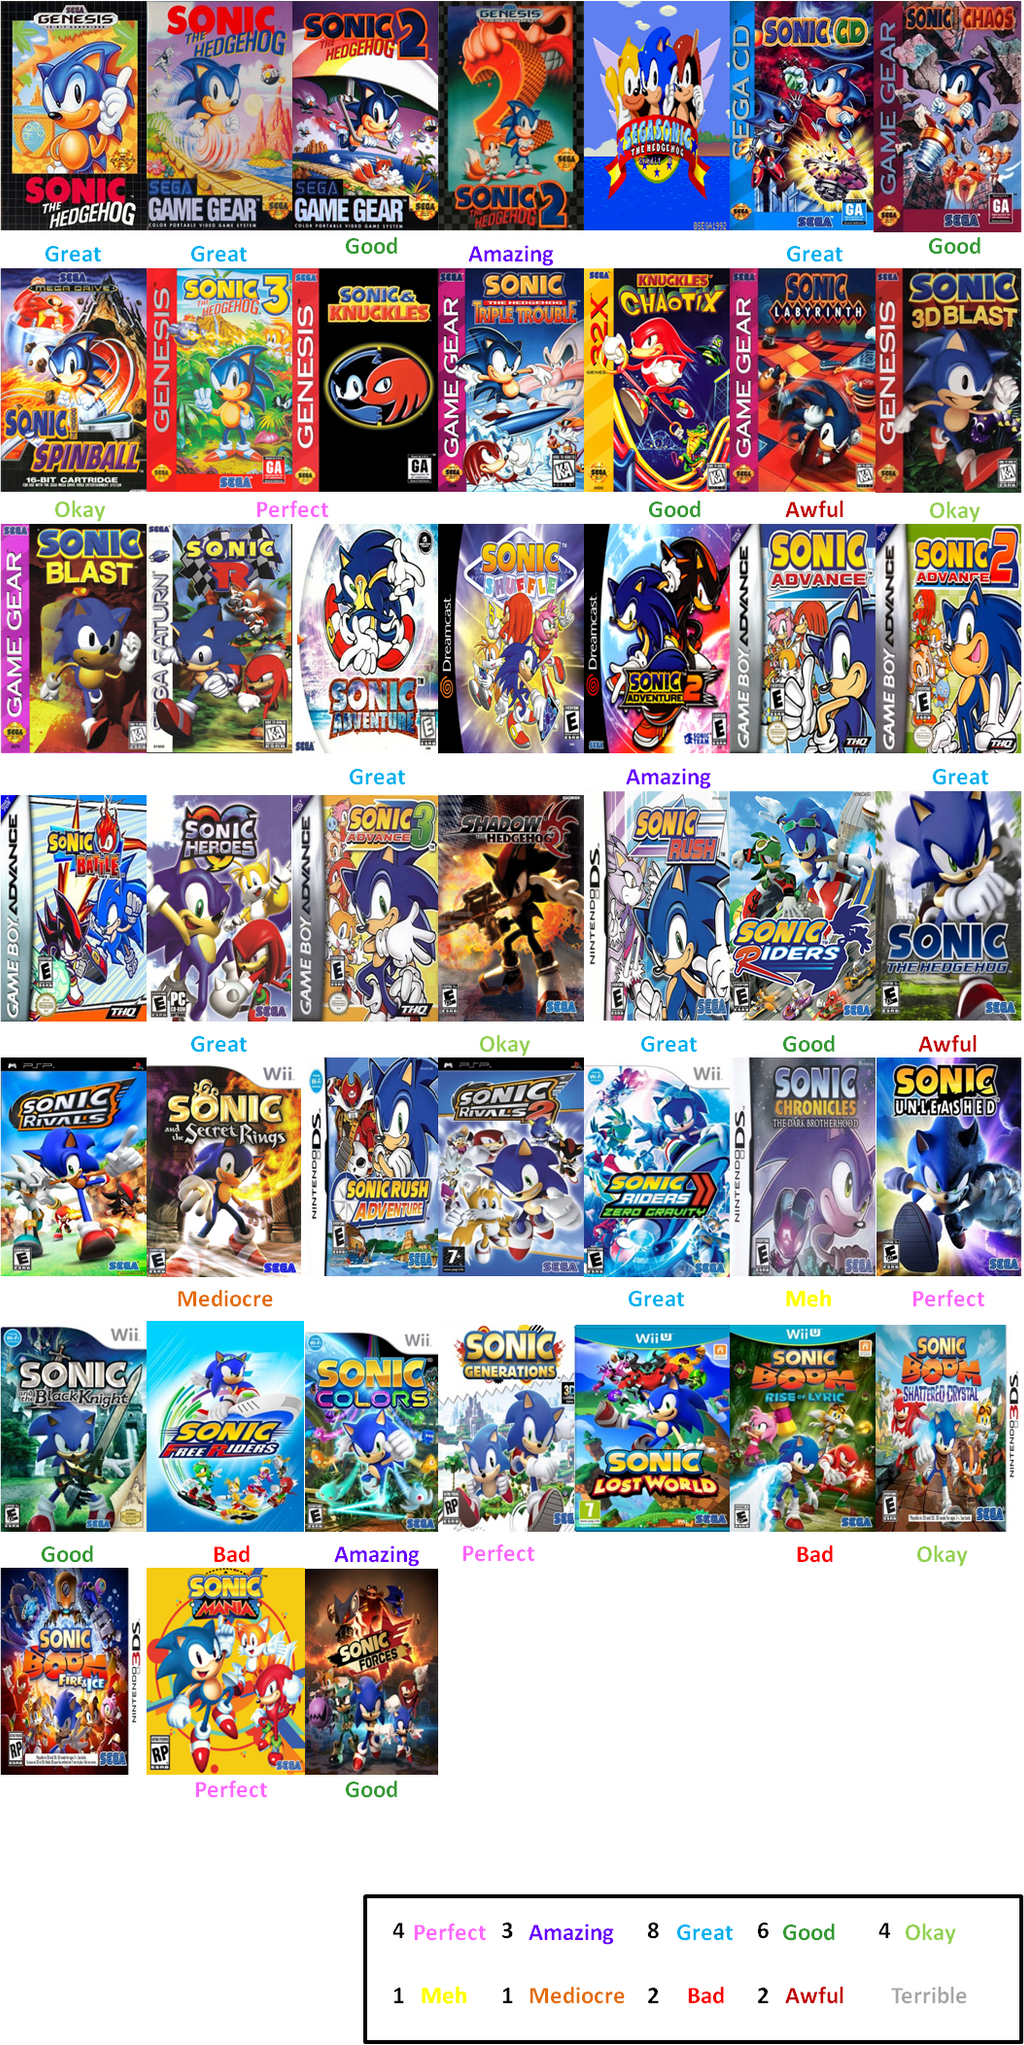 Sonic The Hedgehog Games Scorecard By Loudcartoonist99 On Deviantart